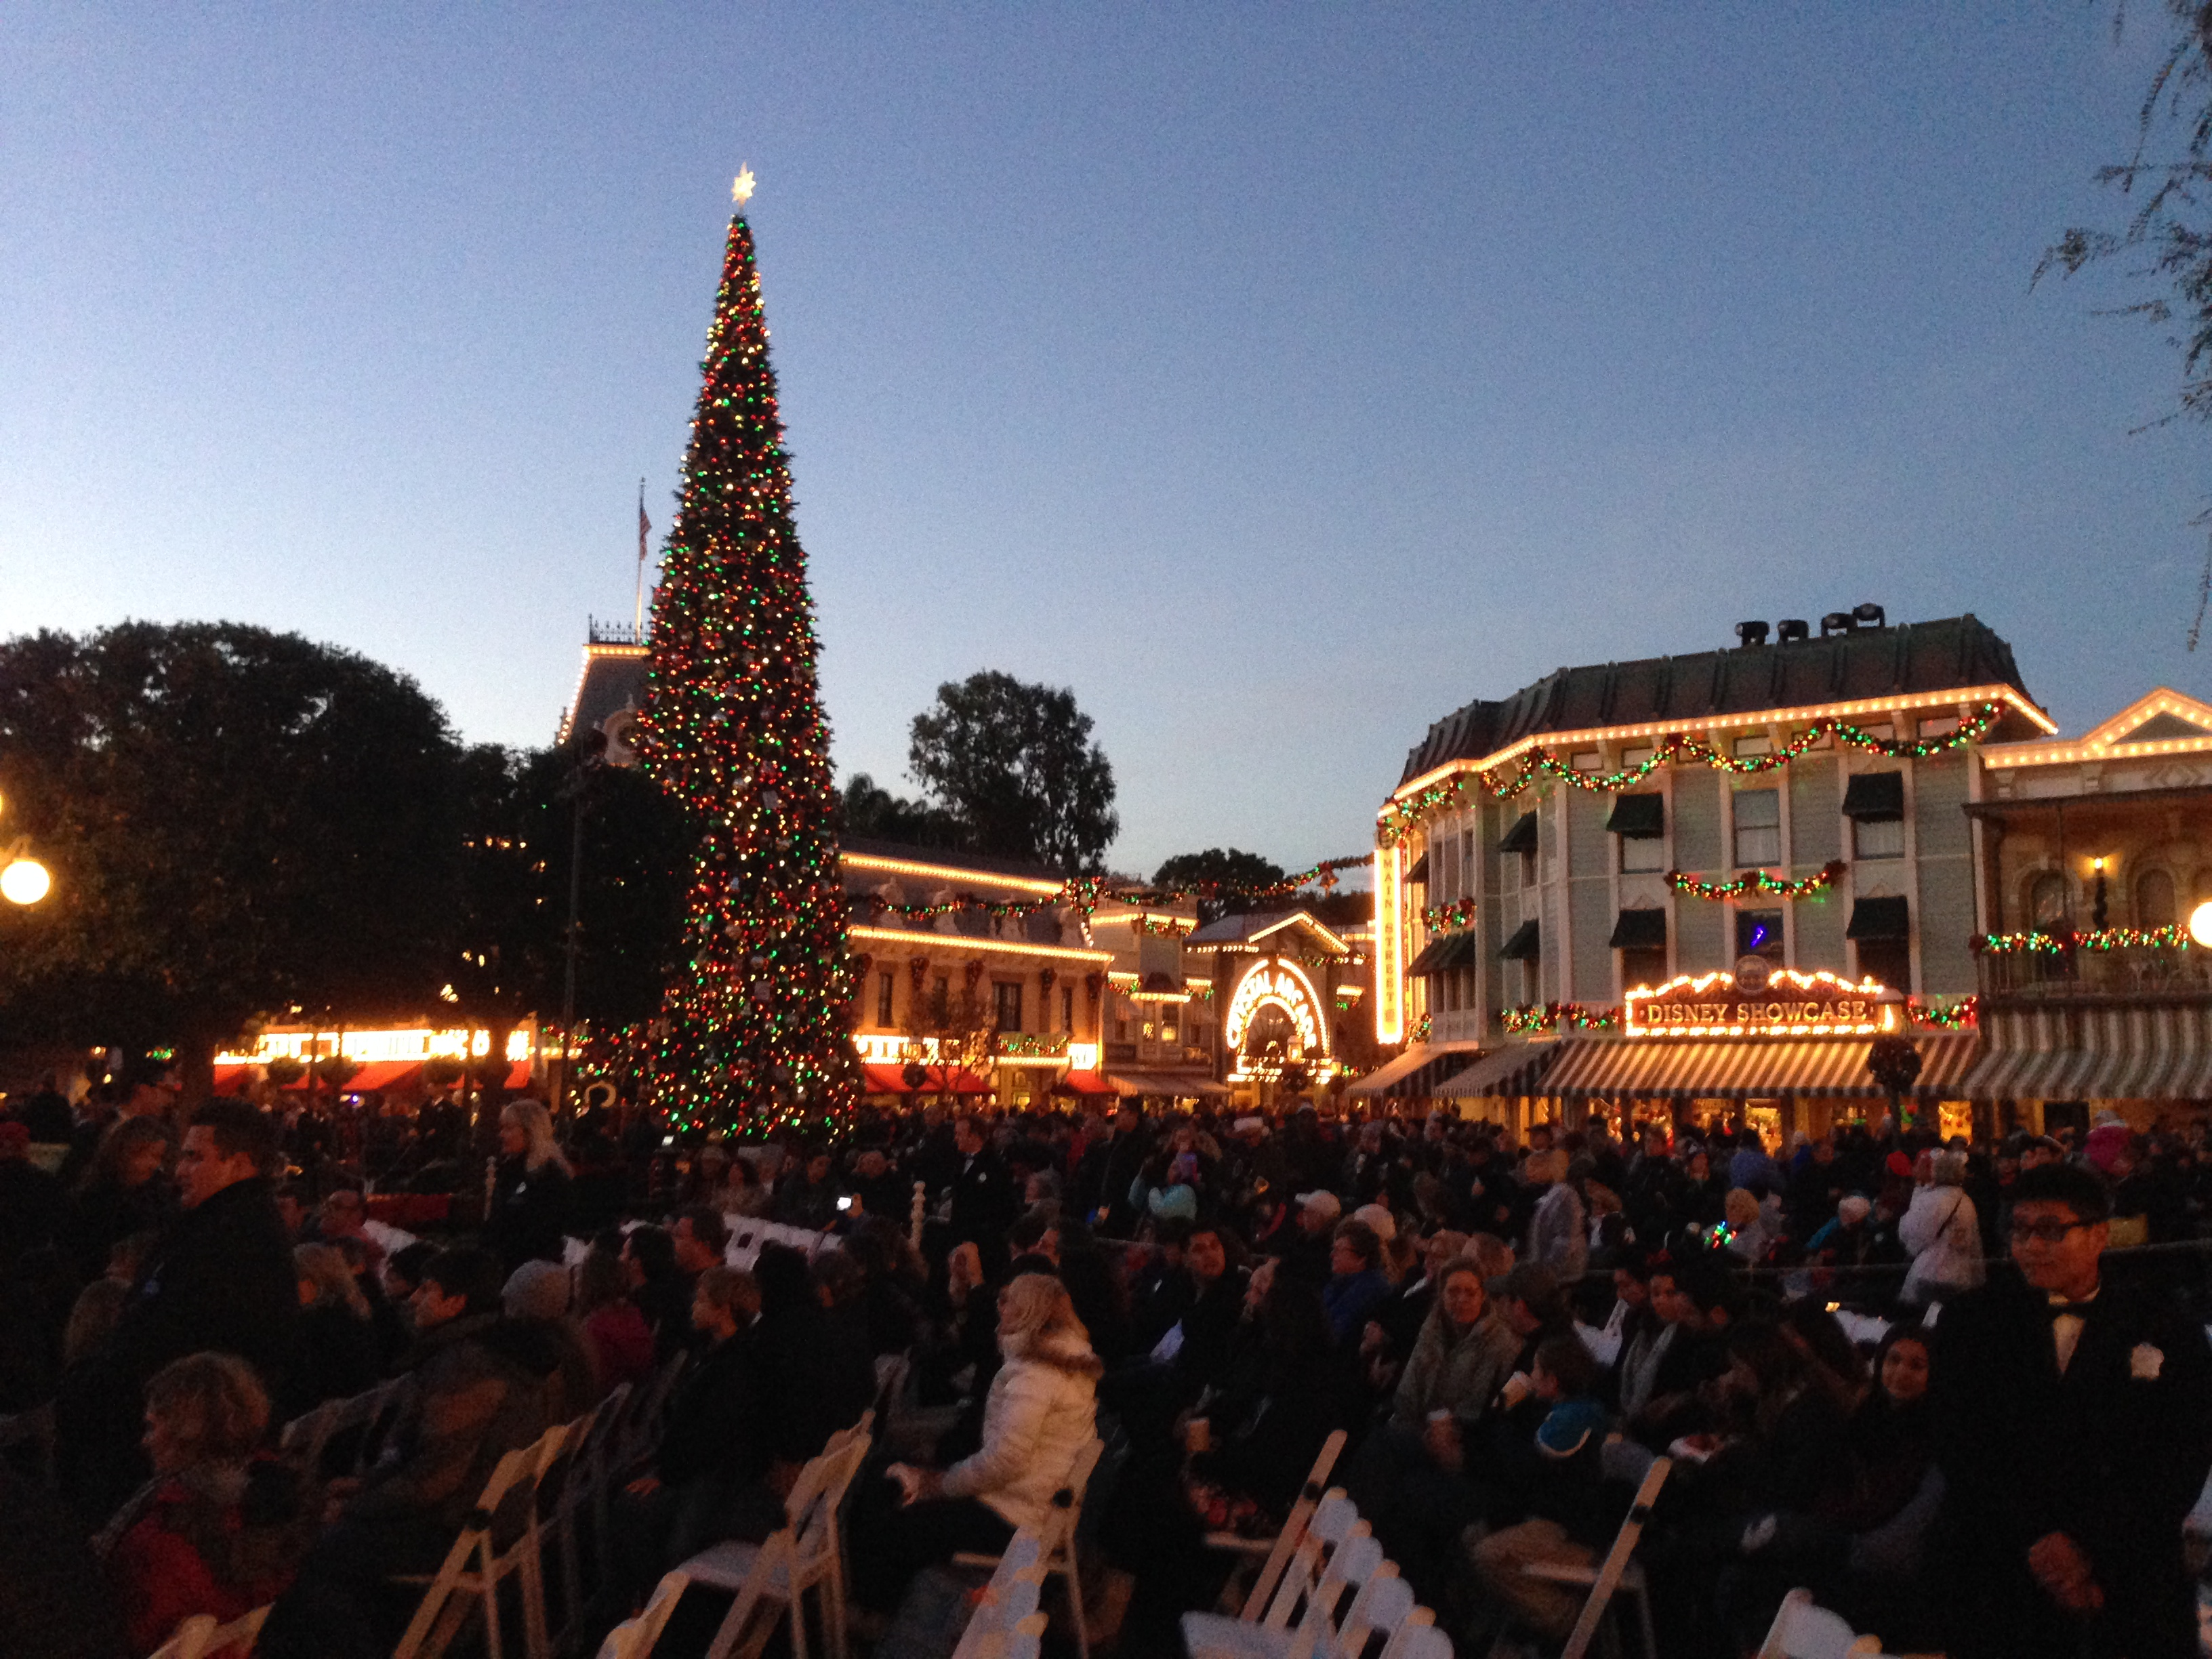 By the time of the Tree Lighting Ceremony, crowds are amassing steadily - must be thousands